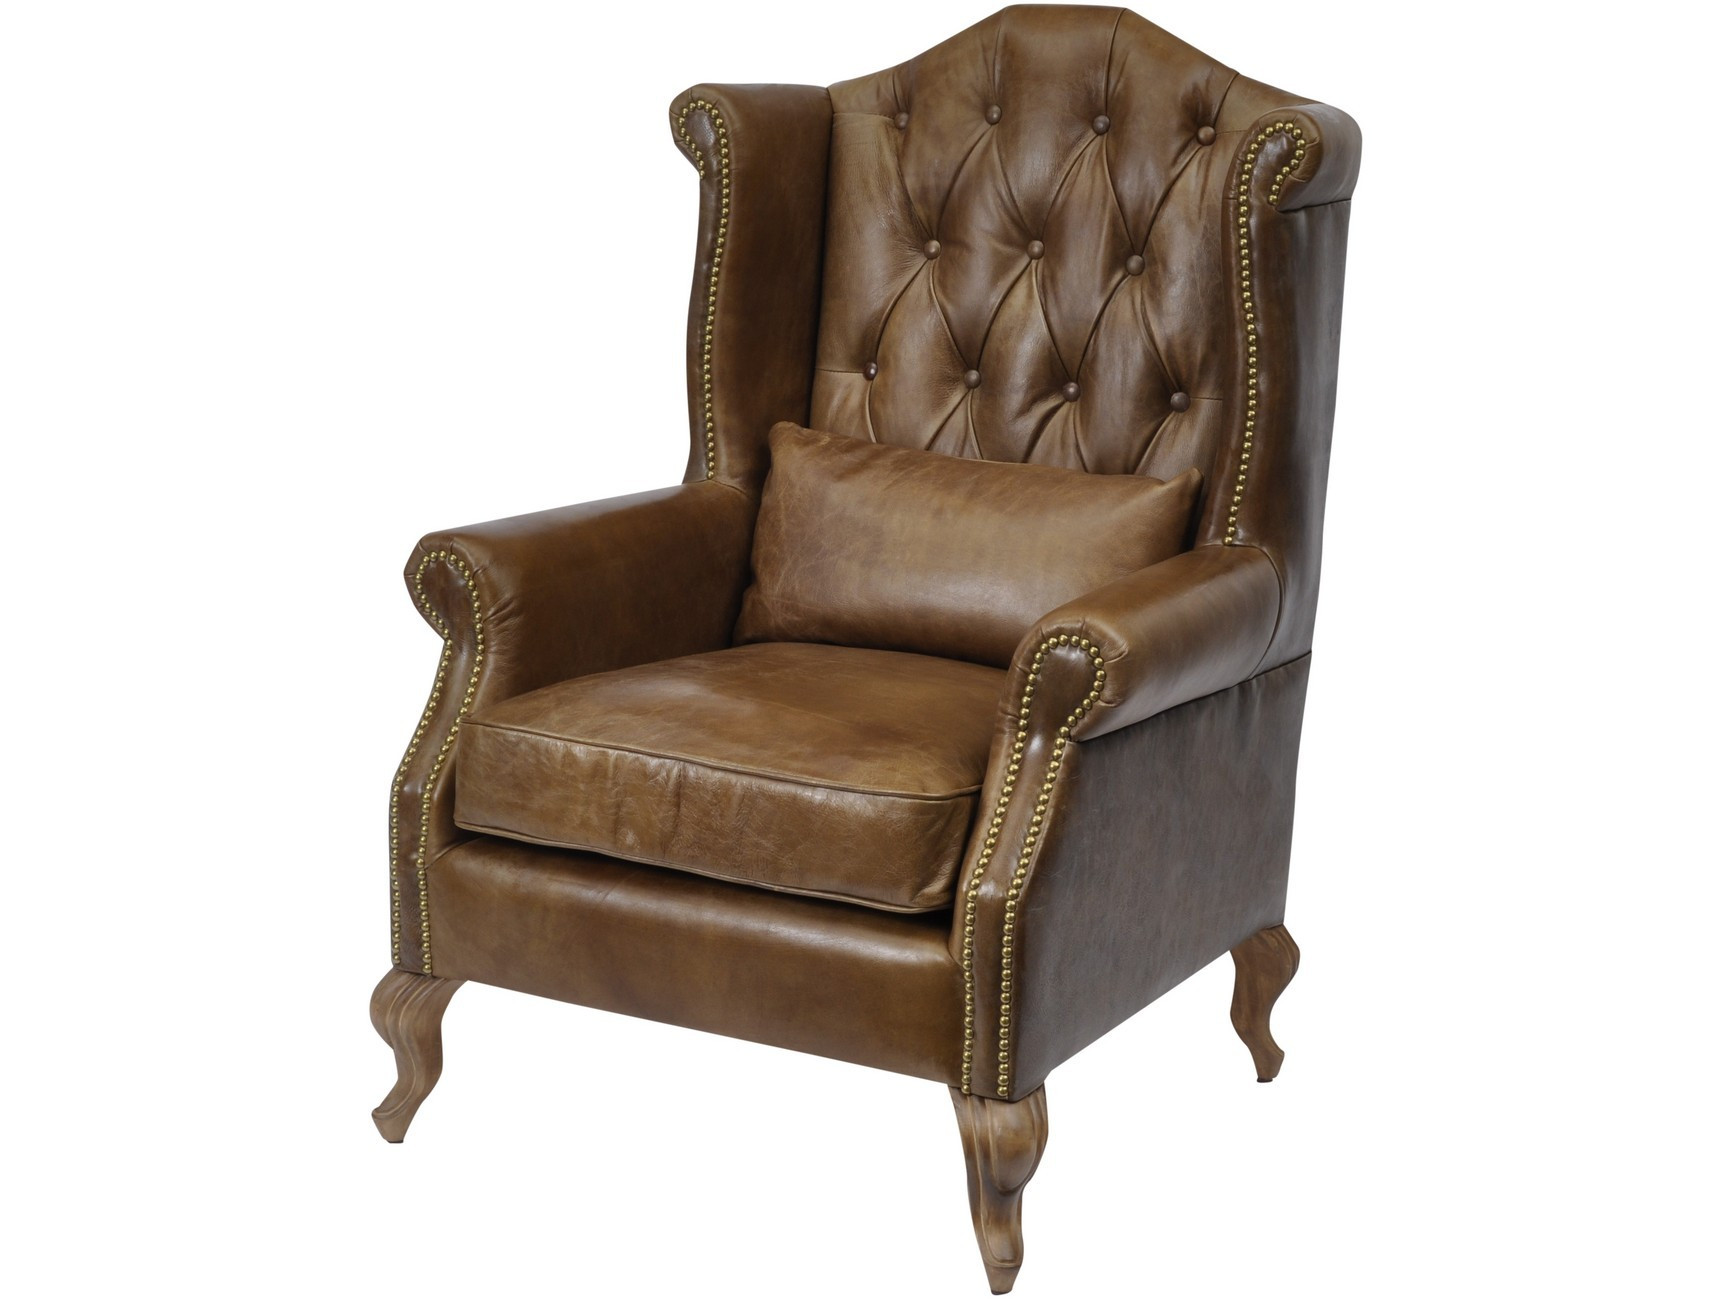 Woodcroft Brown Leather Armchair With Cushion